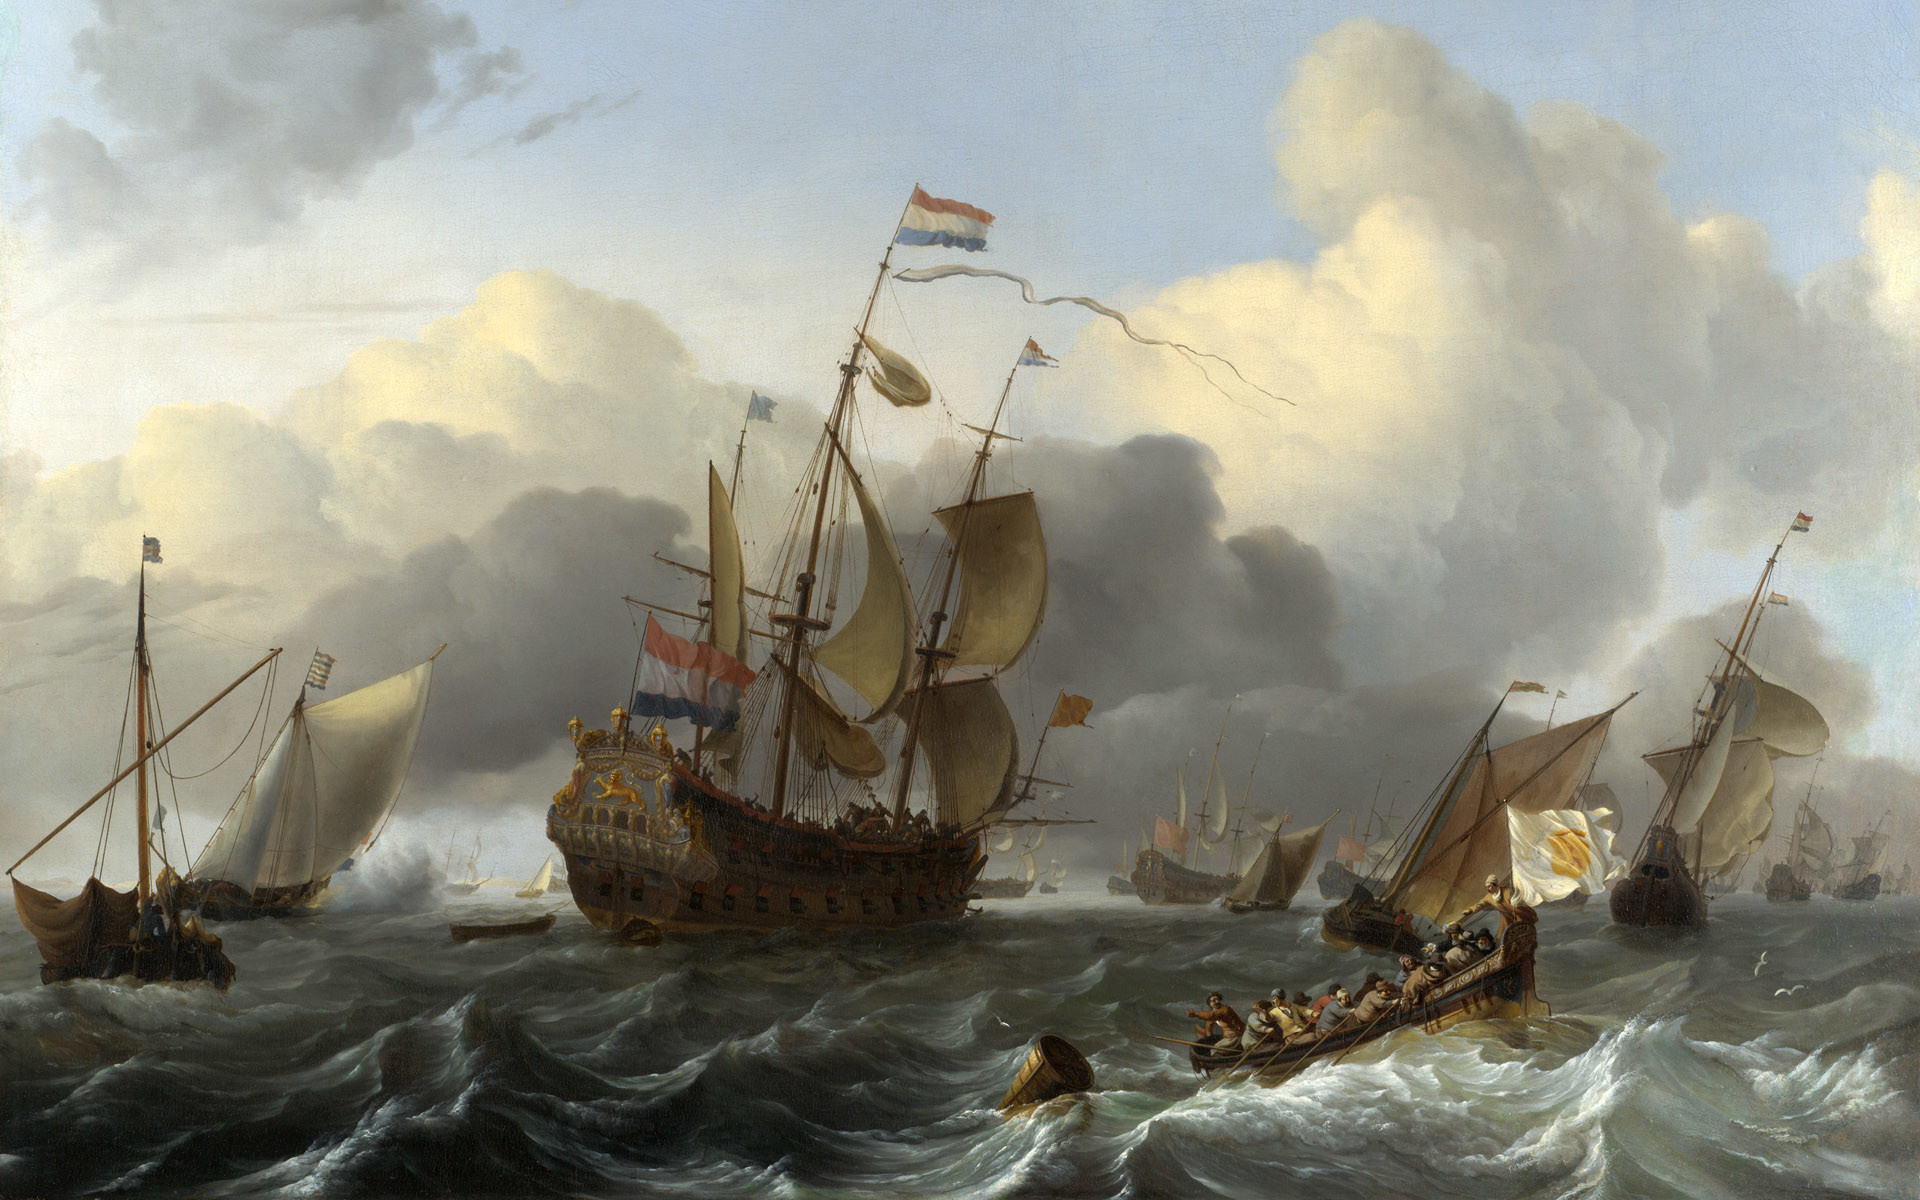 Ludolf Bakhuizen German-born Dutch Golden Age painter | Paintings |  Pinterest | Dutch golden age, Golden age and Paintings